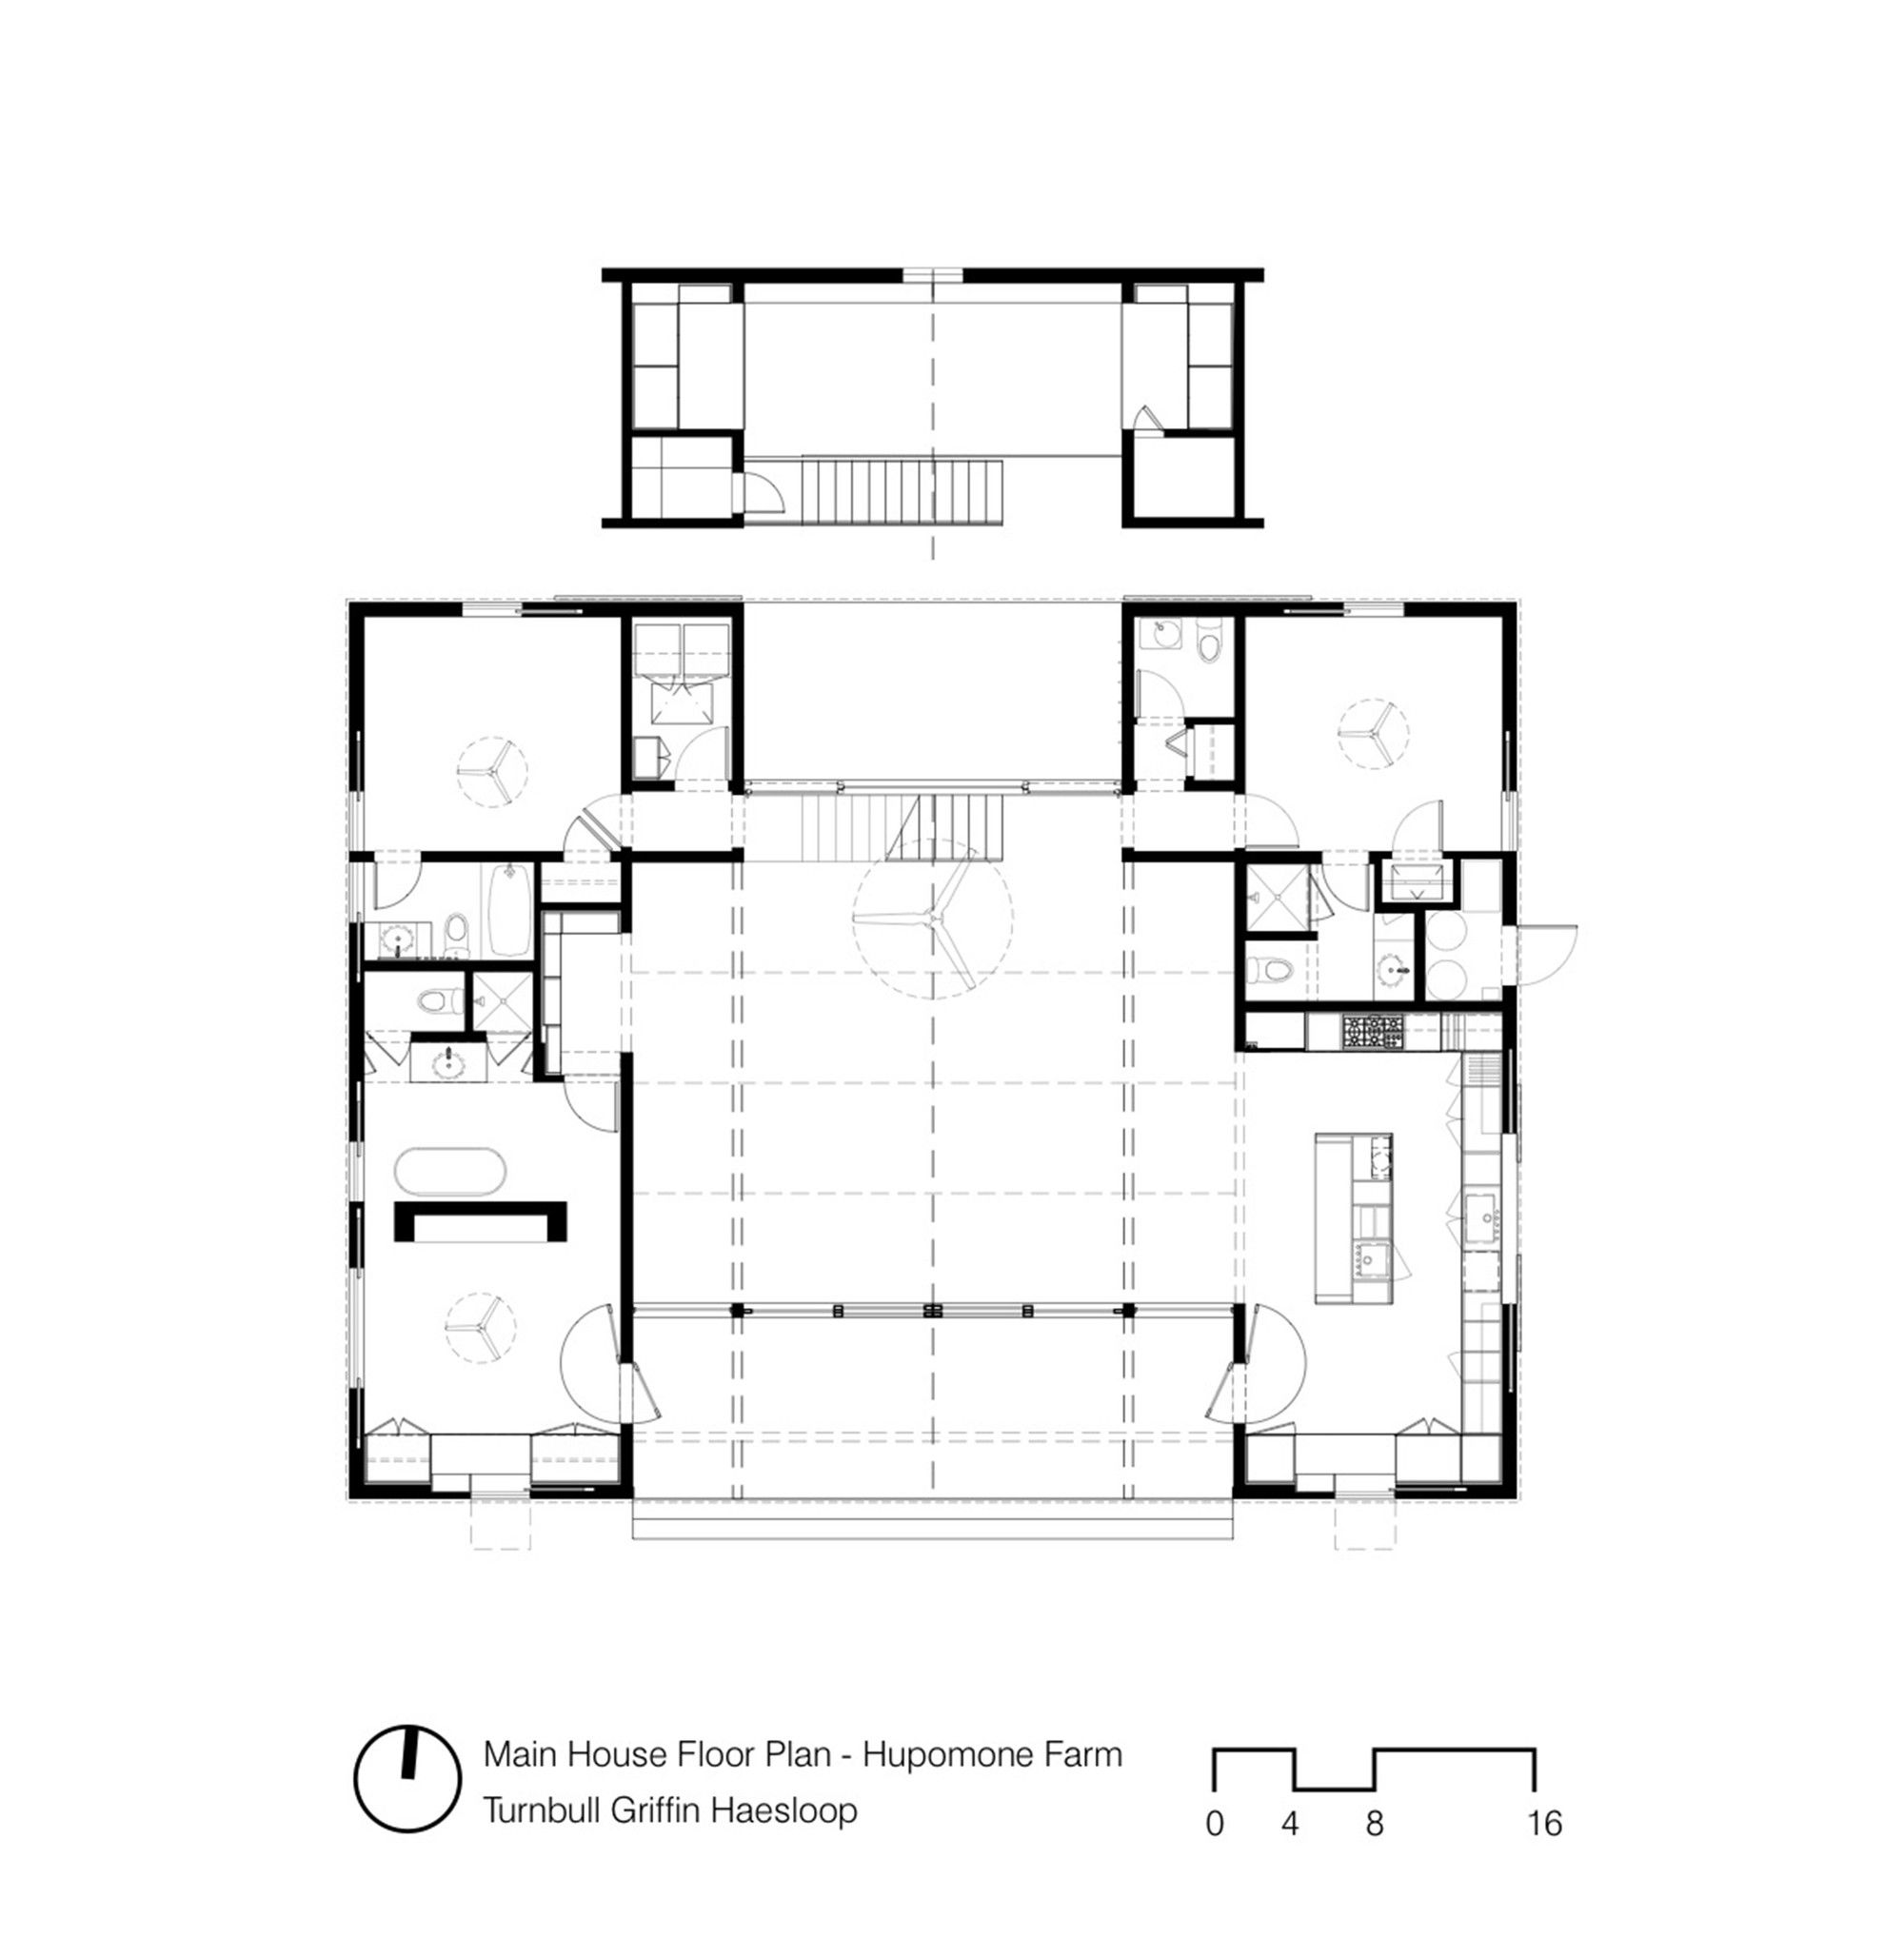 Gallery Of Hupomone Ranch Turnbull Griffin Haesloop 16 Floor Plans House Design How To Plan